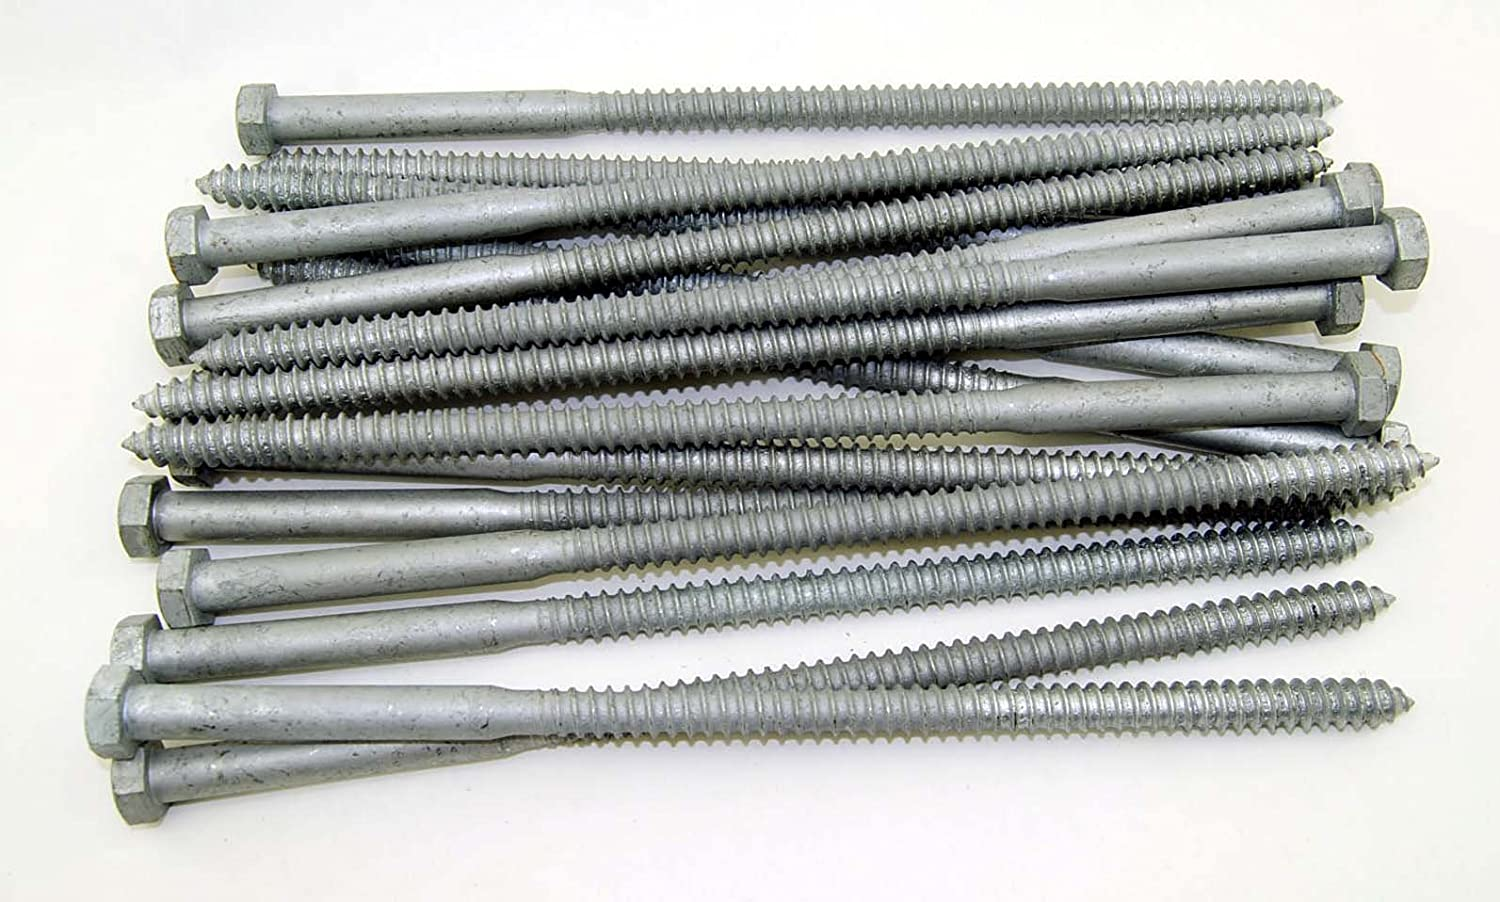 20 Galvanized Hex Head 1 2 X 12 Lag Bolts Wood Screws Amazon Com Industrial Scientific